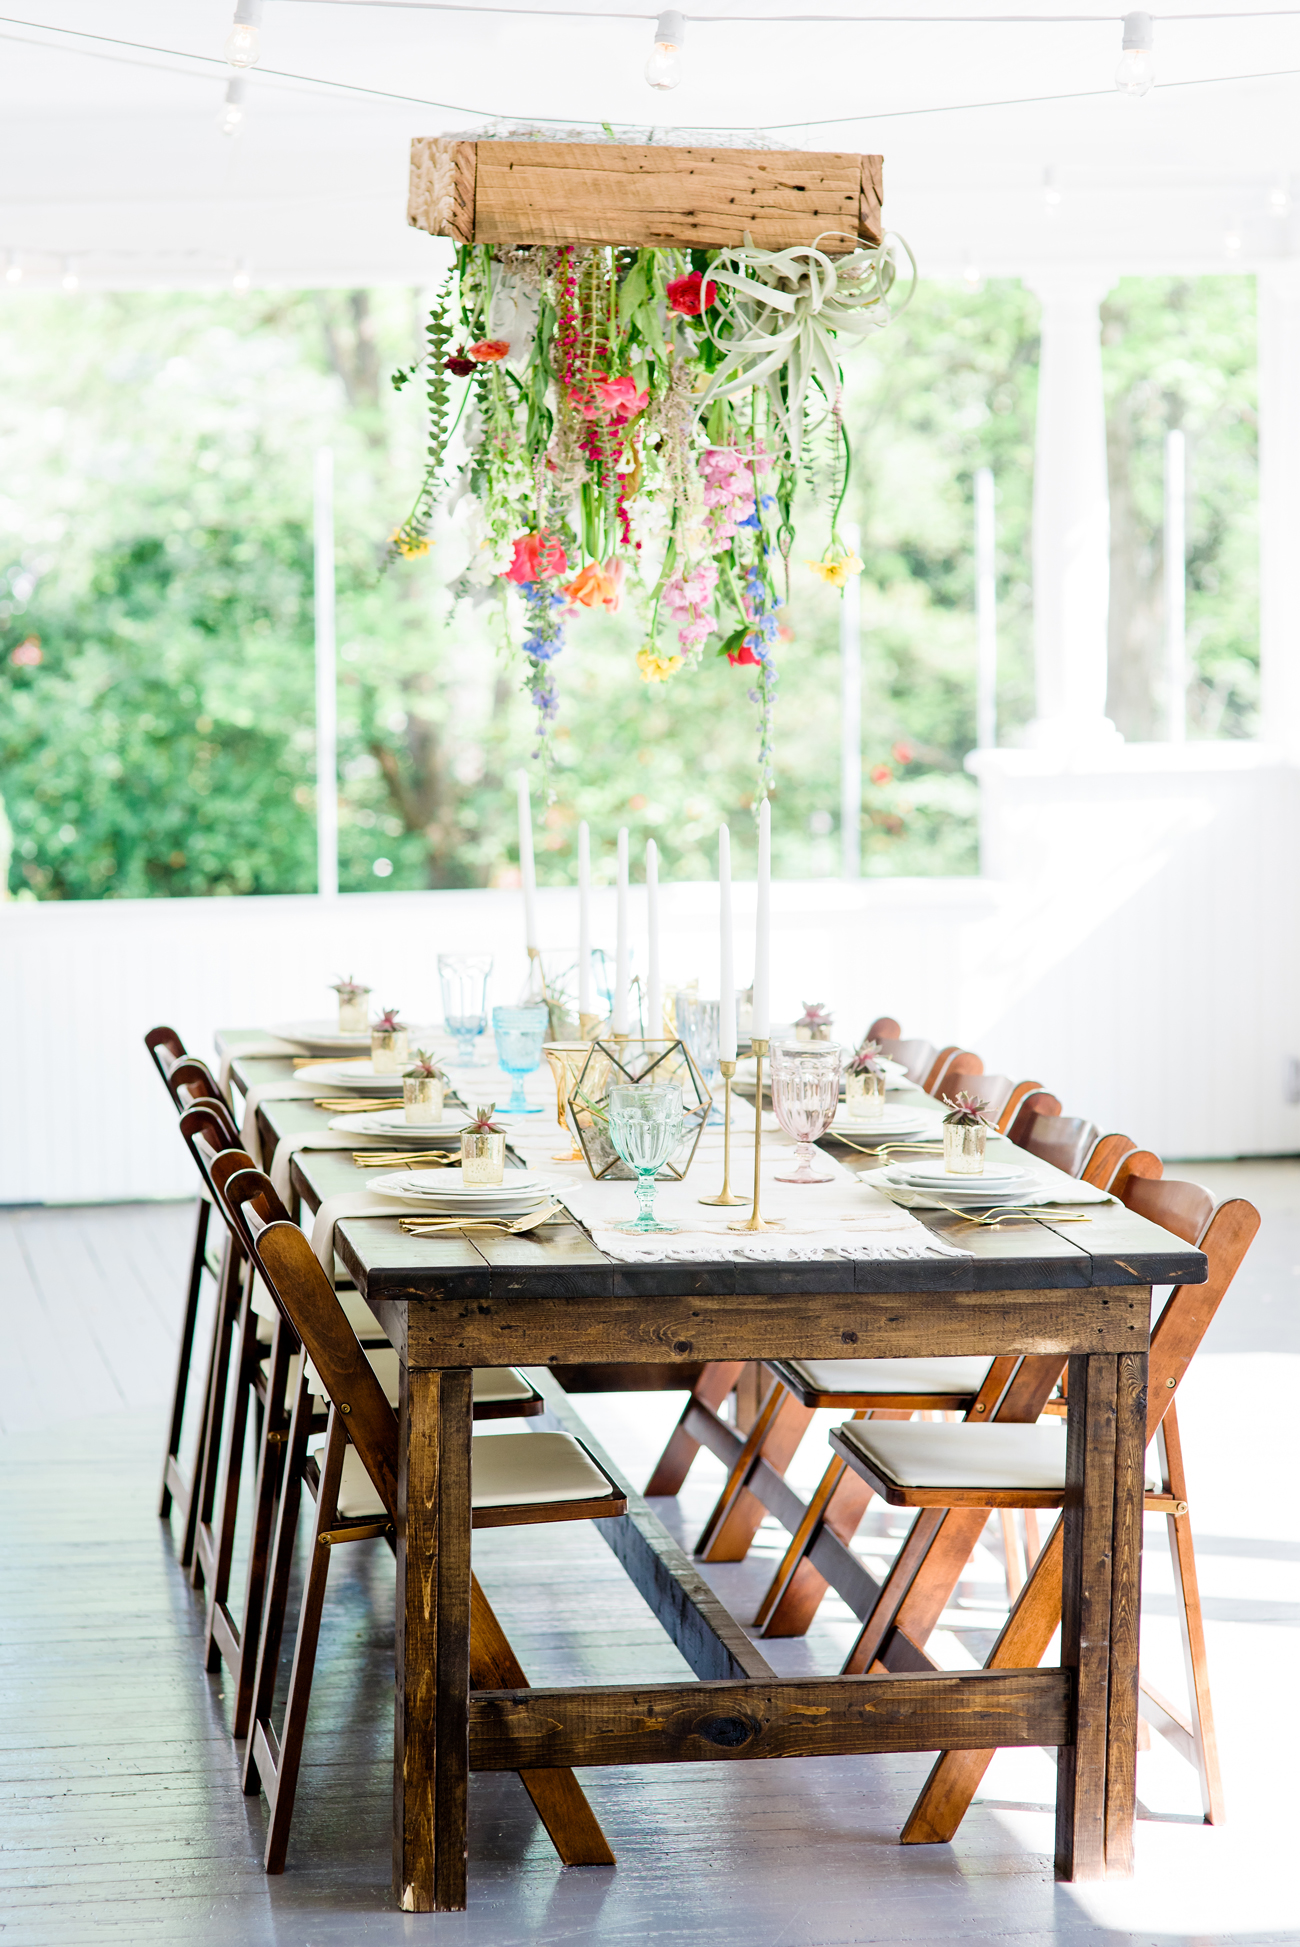 upside-down hanging flower box above table